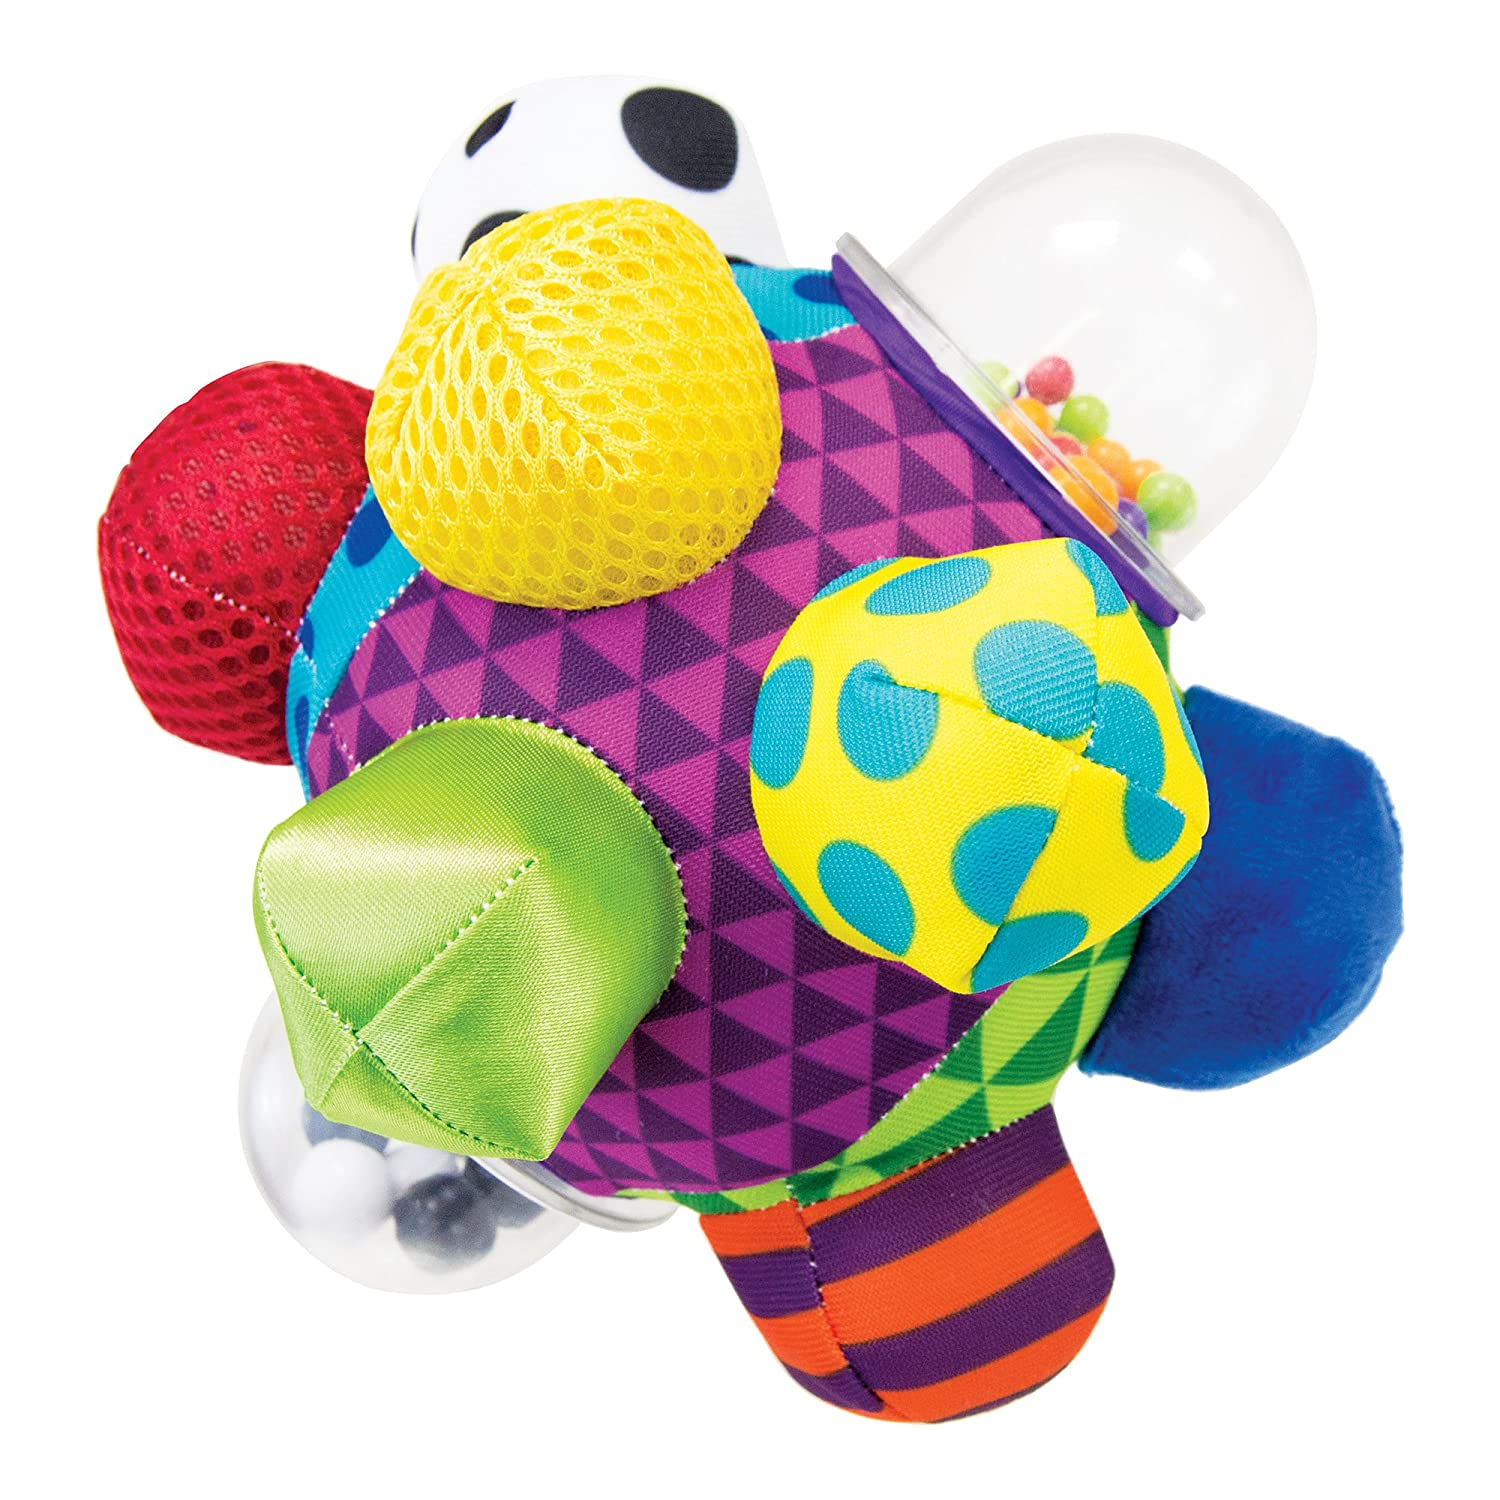 Sassy Developmental Bumpy Ball | Easy to Grasp Bumps Help Develop Motor Skills